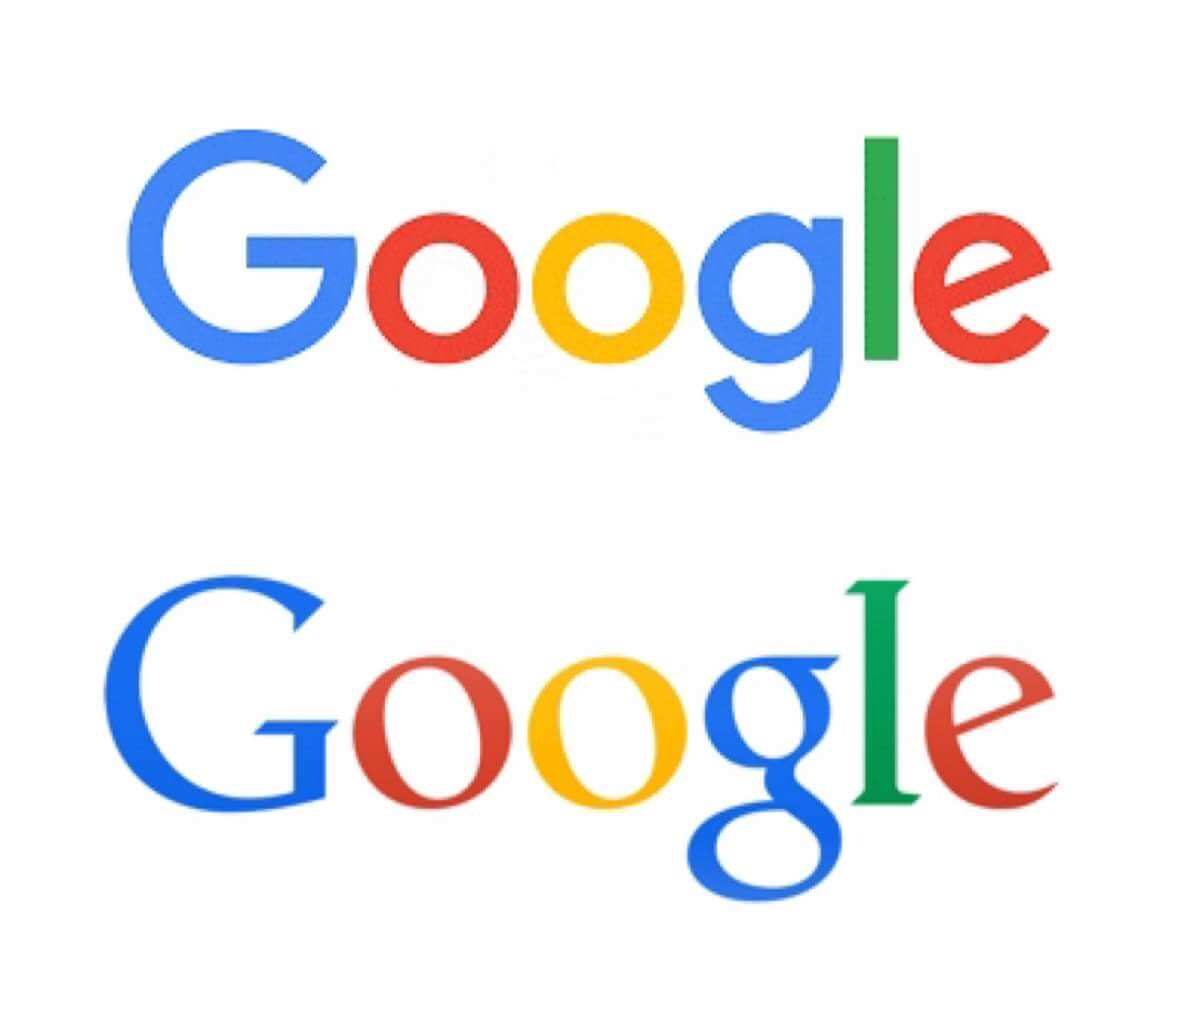 Google Logos | Web Design Trends